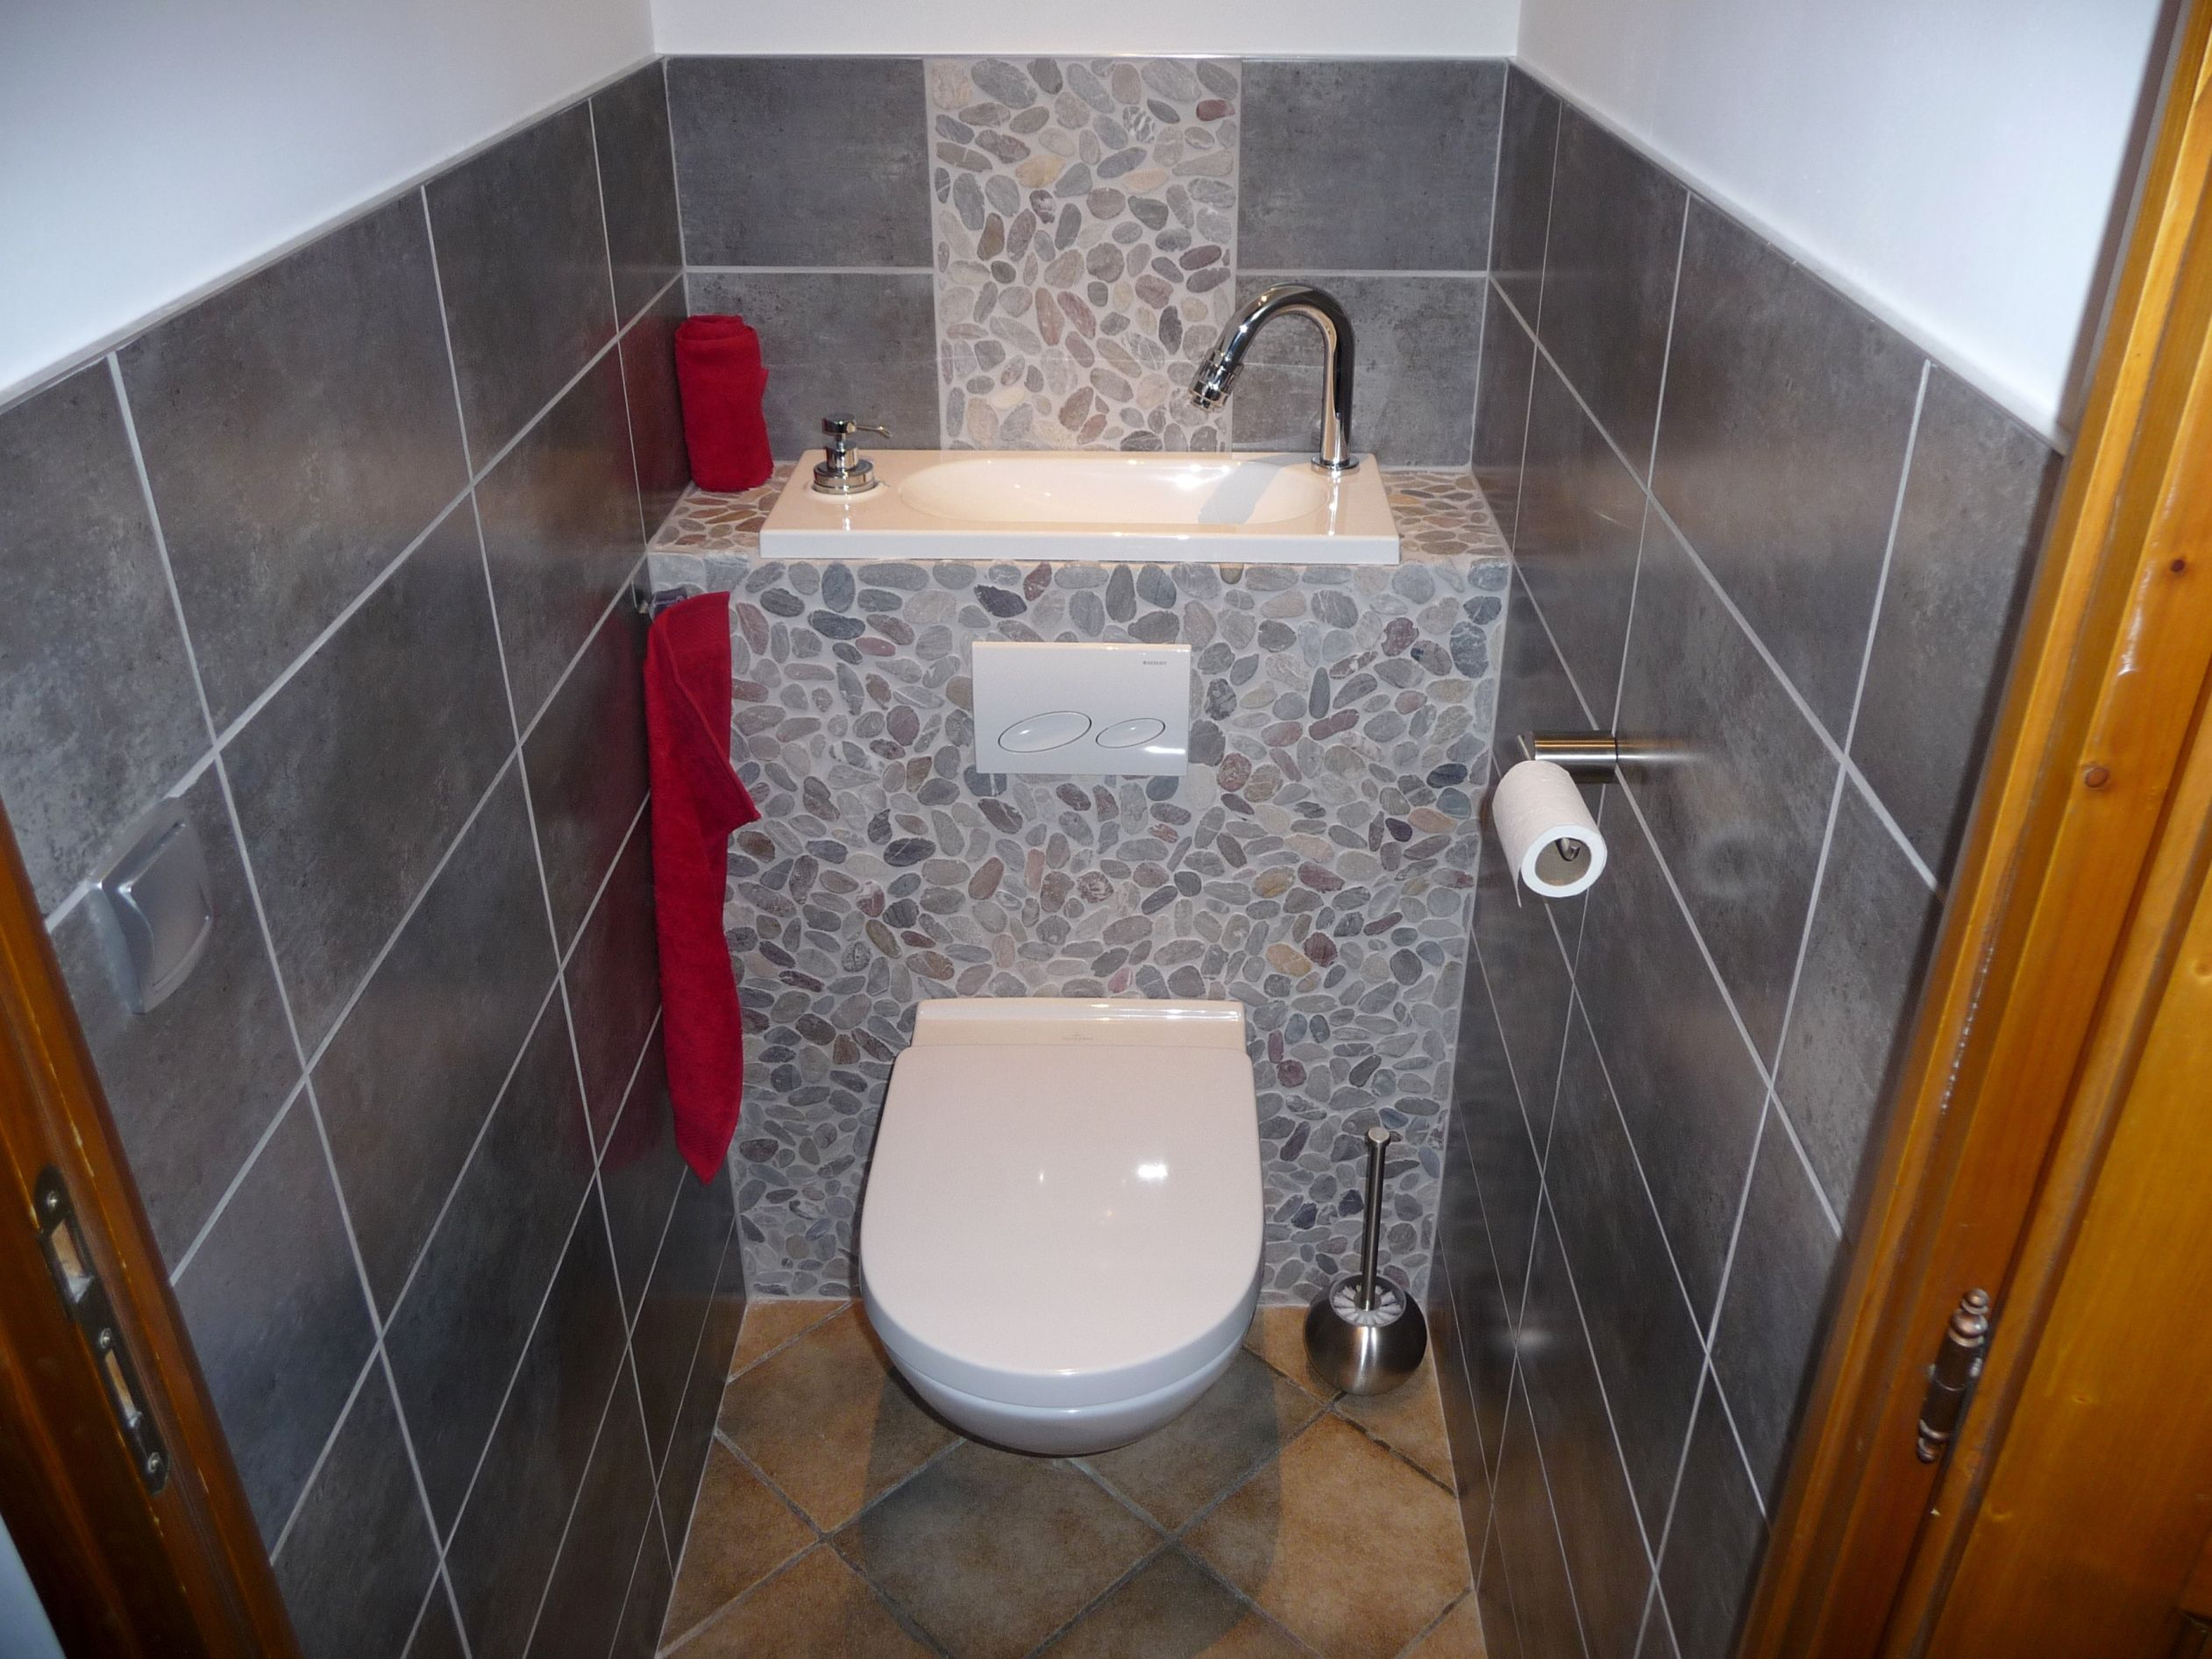 Wc avec lavabo d coration int rieure en galets http - Decoration toilette suspendu ...